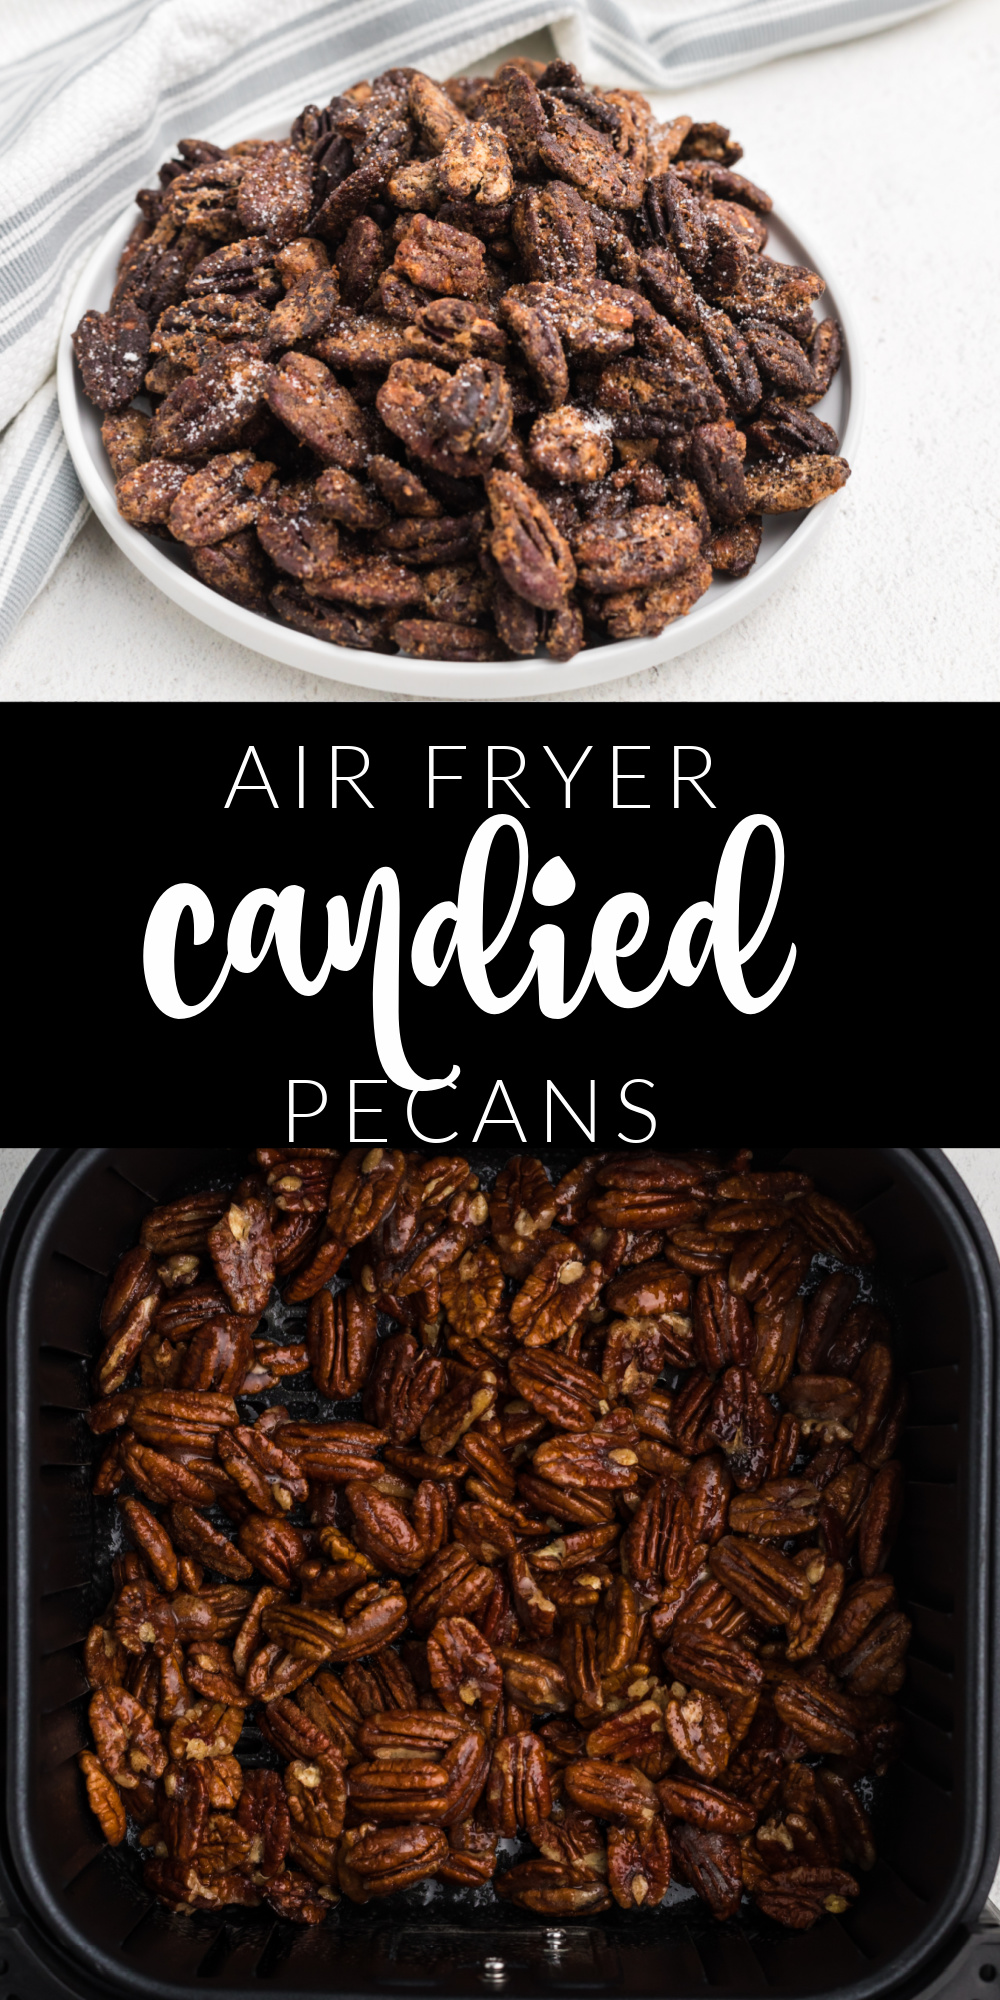 Air Fryer Candied Pecans are made in minutes with the Air Fryer. Made with pecans, sugar, cinnamon, and more. This is such a simple pecan recipe!